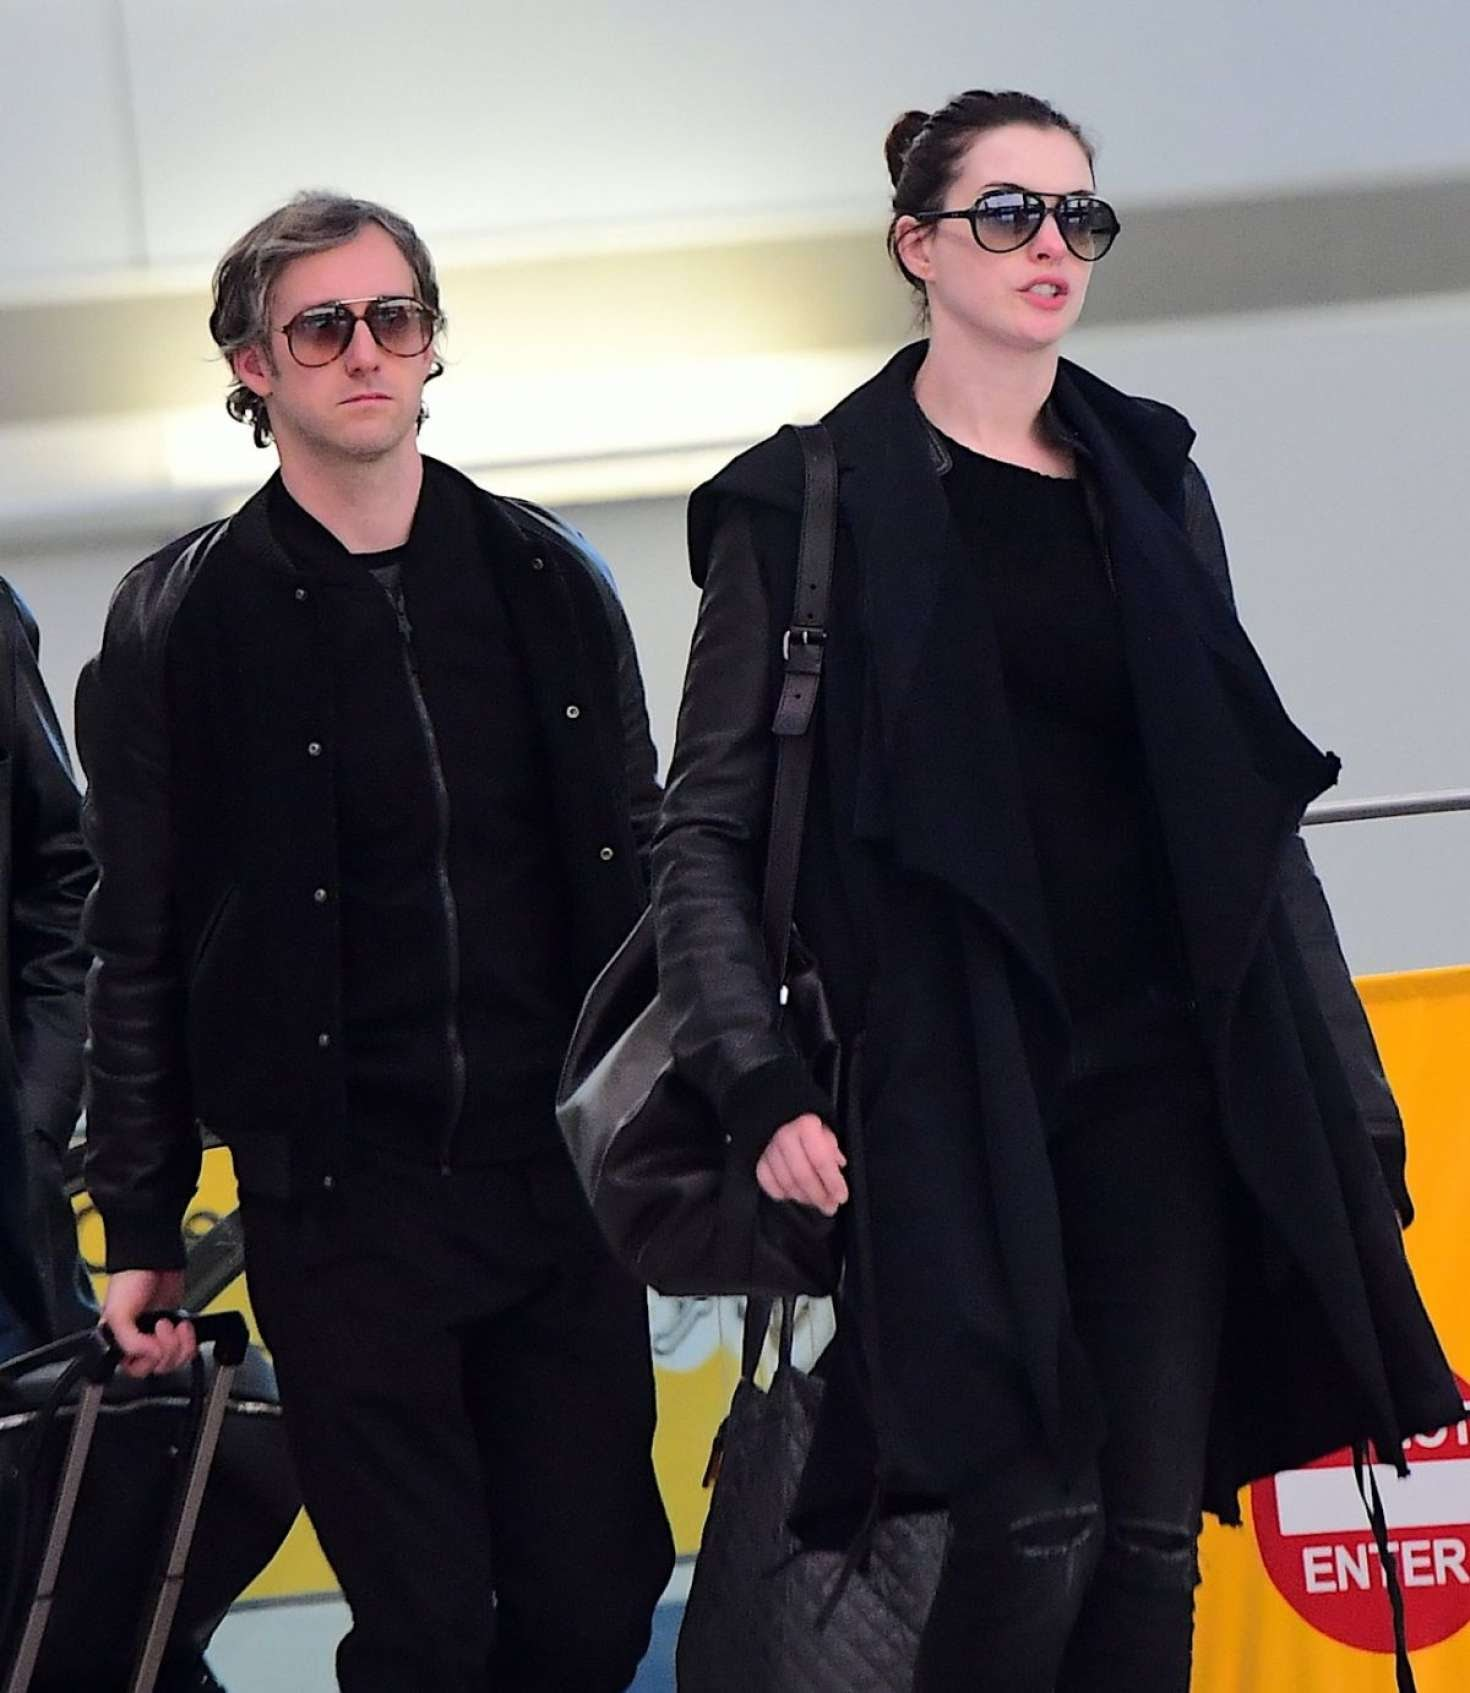 Anne Hathaway came for shooting of the Oceans 8